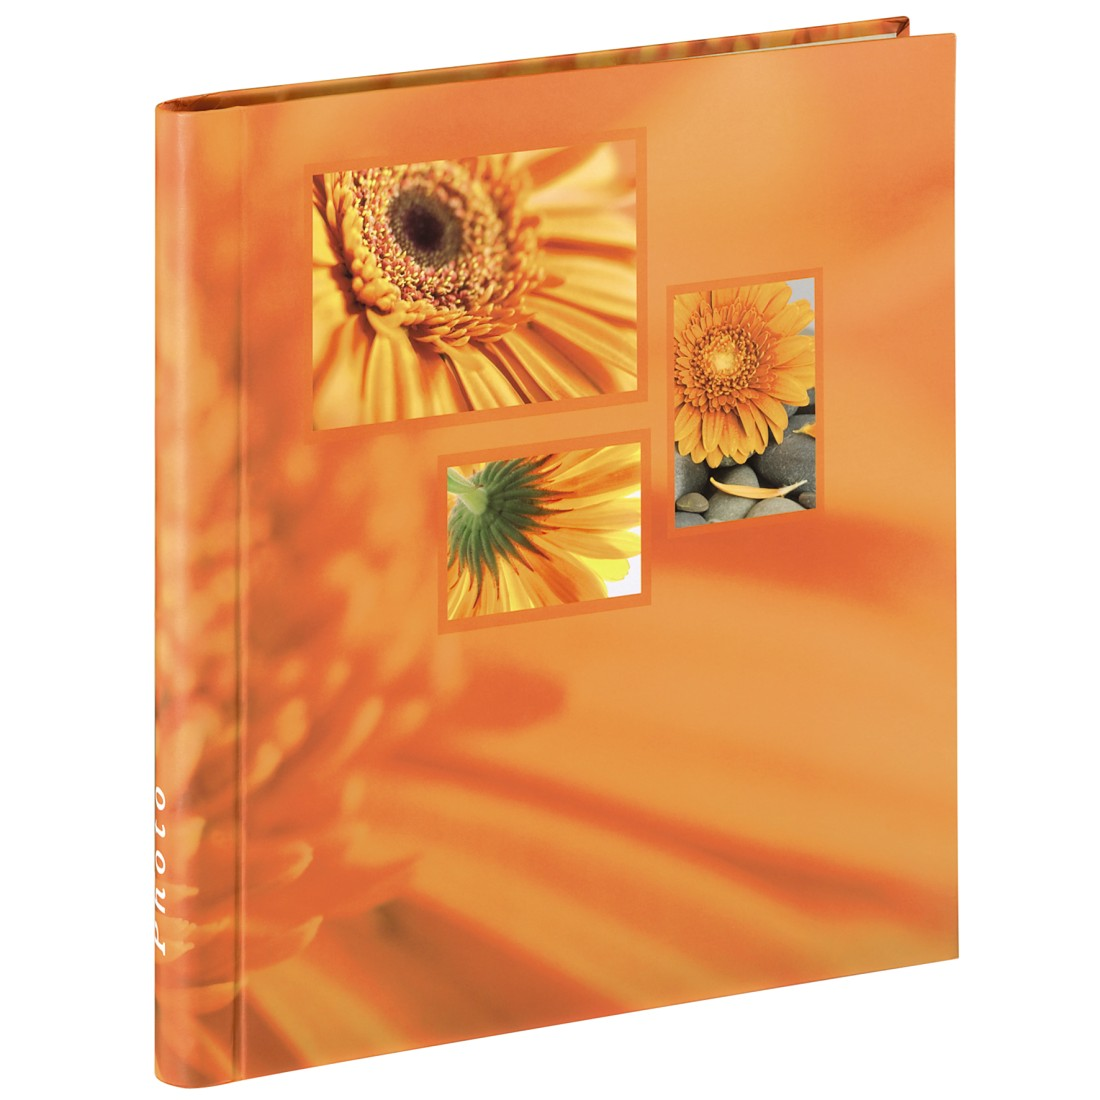 abx High-Res Image - Hama, Singo Self-Adhesive Album, 28x31 cm, 20 white pages, orange